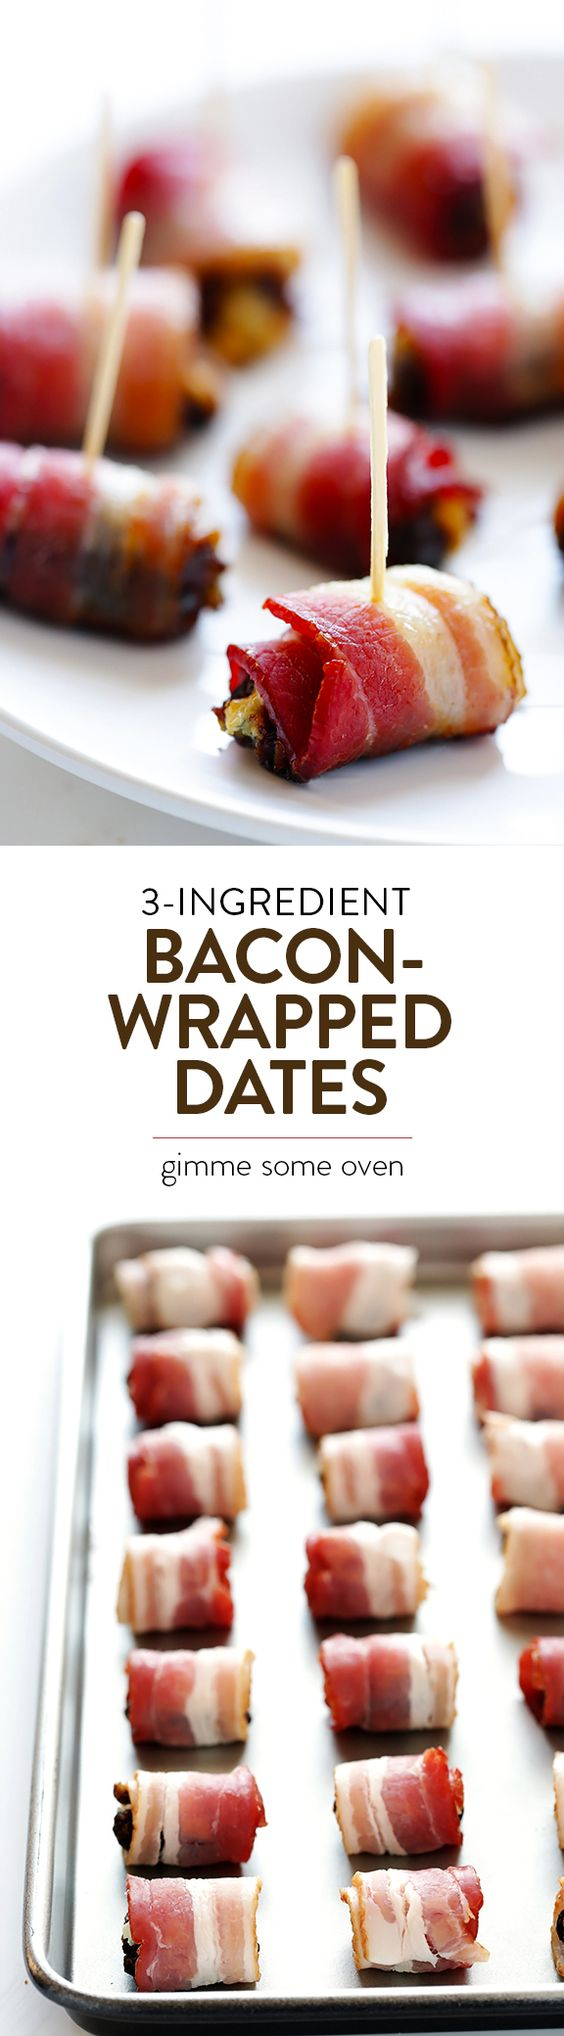 ingredients, Bacon wrapped dates and Bacon wrapped on Pinterest